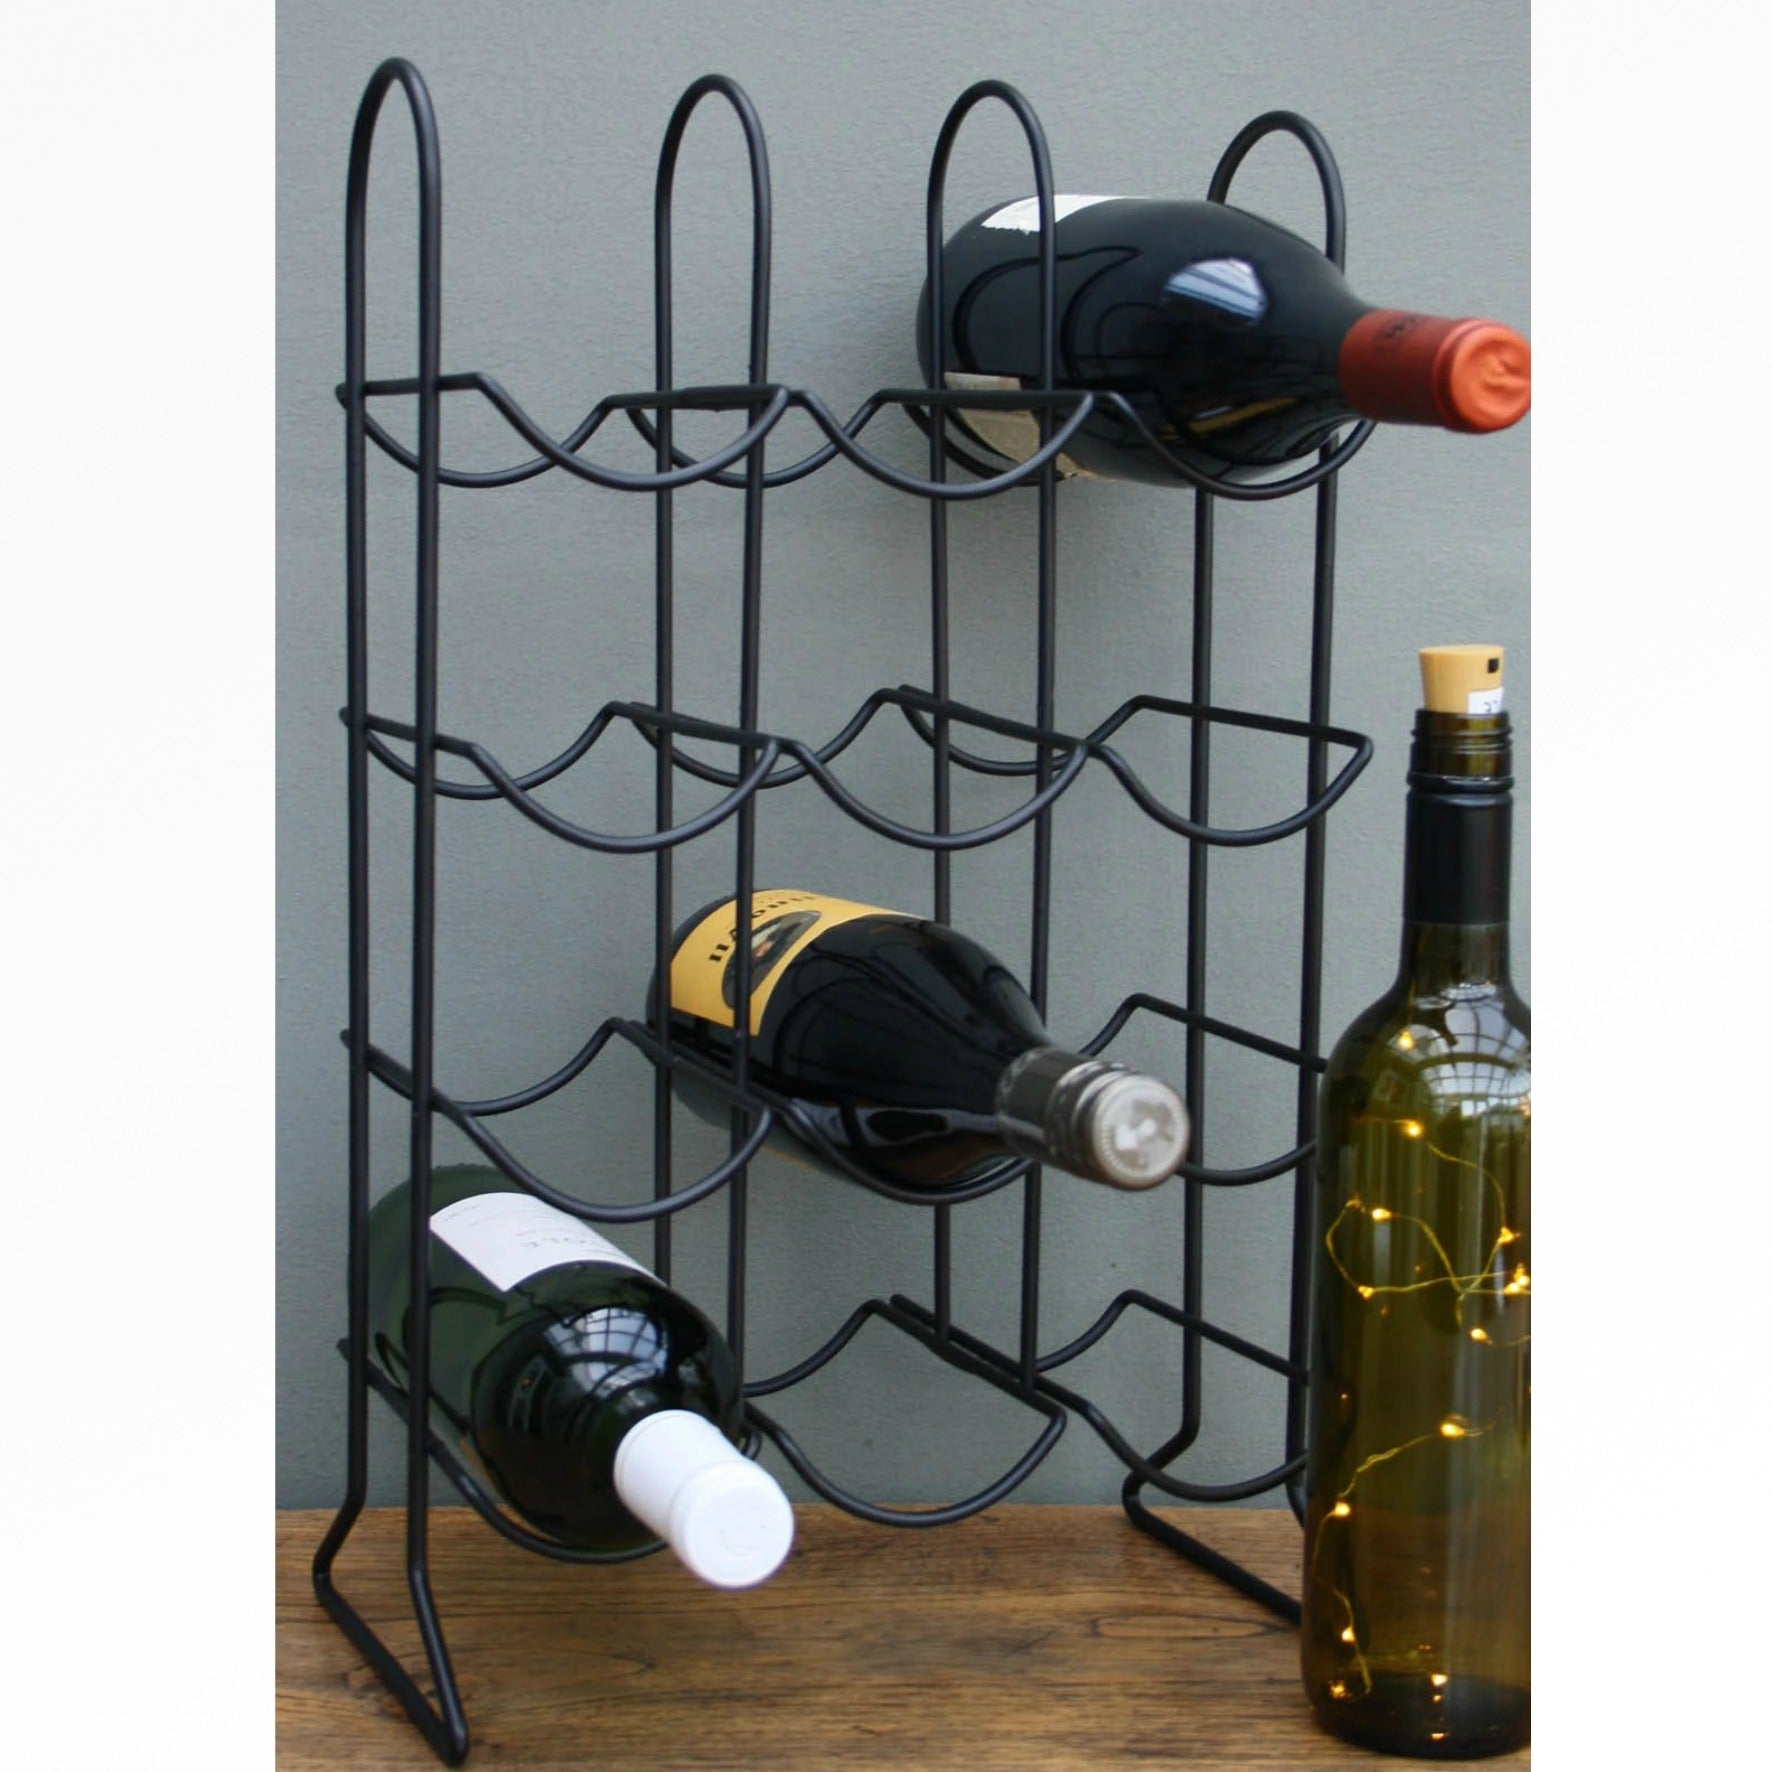 Black Metal 12 Bottle Wine Rack, Furniture by Low Cost Gifts